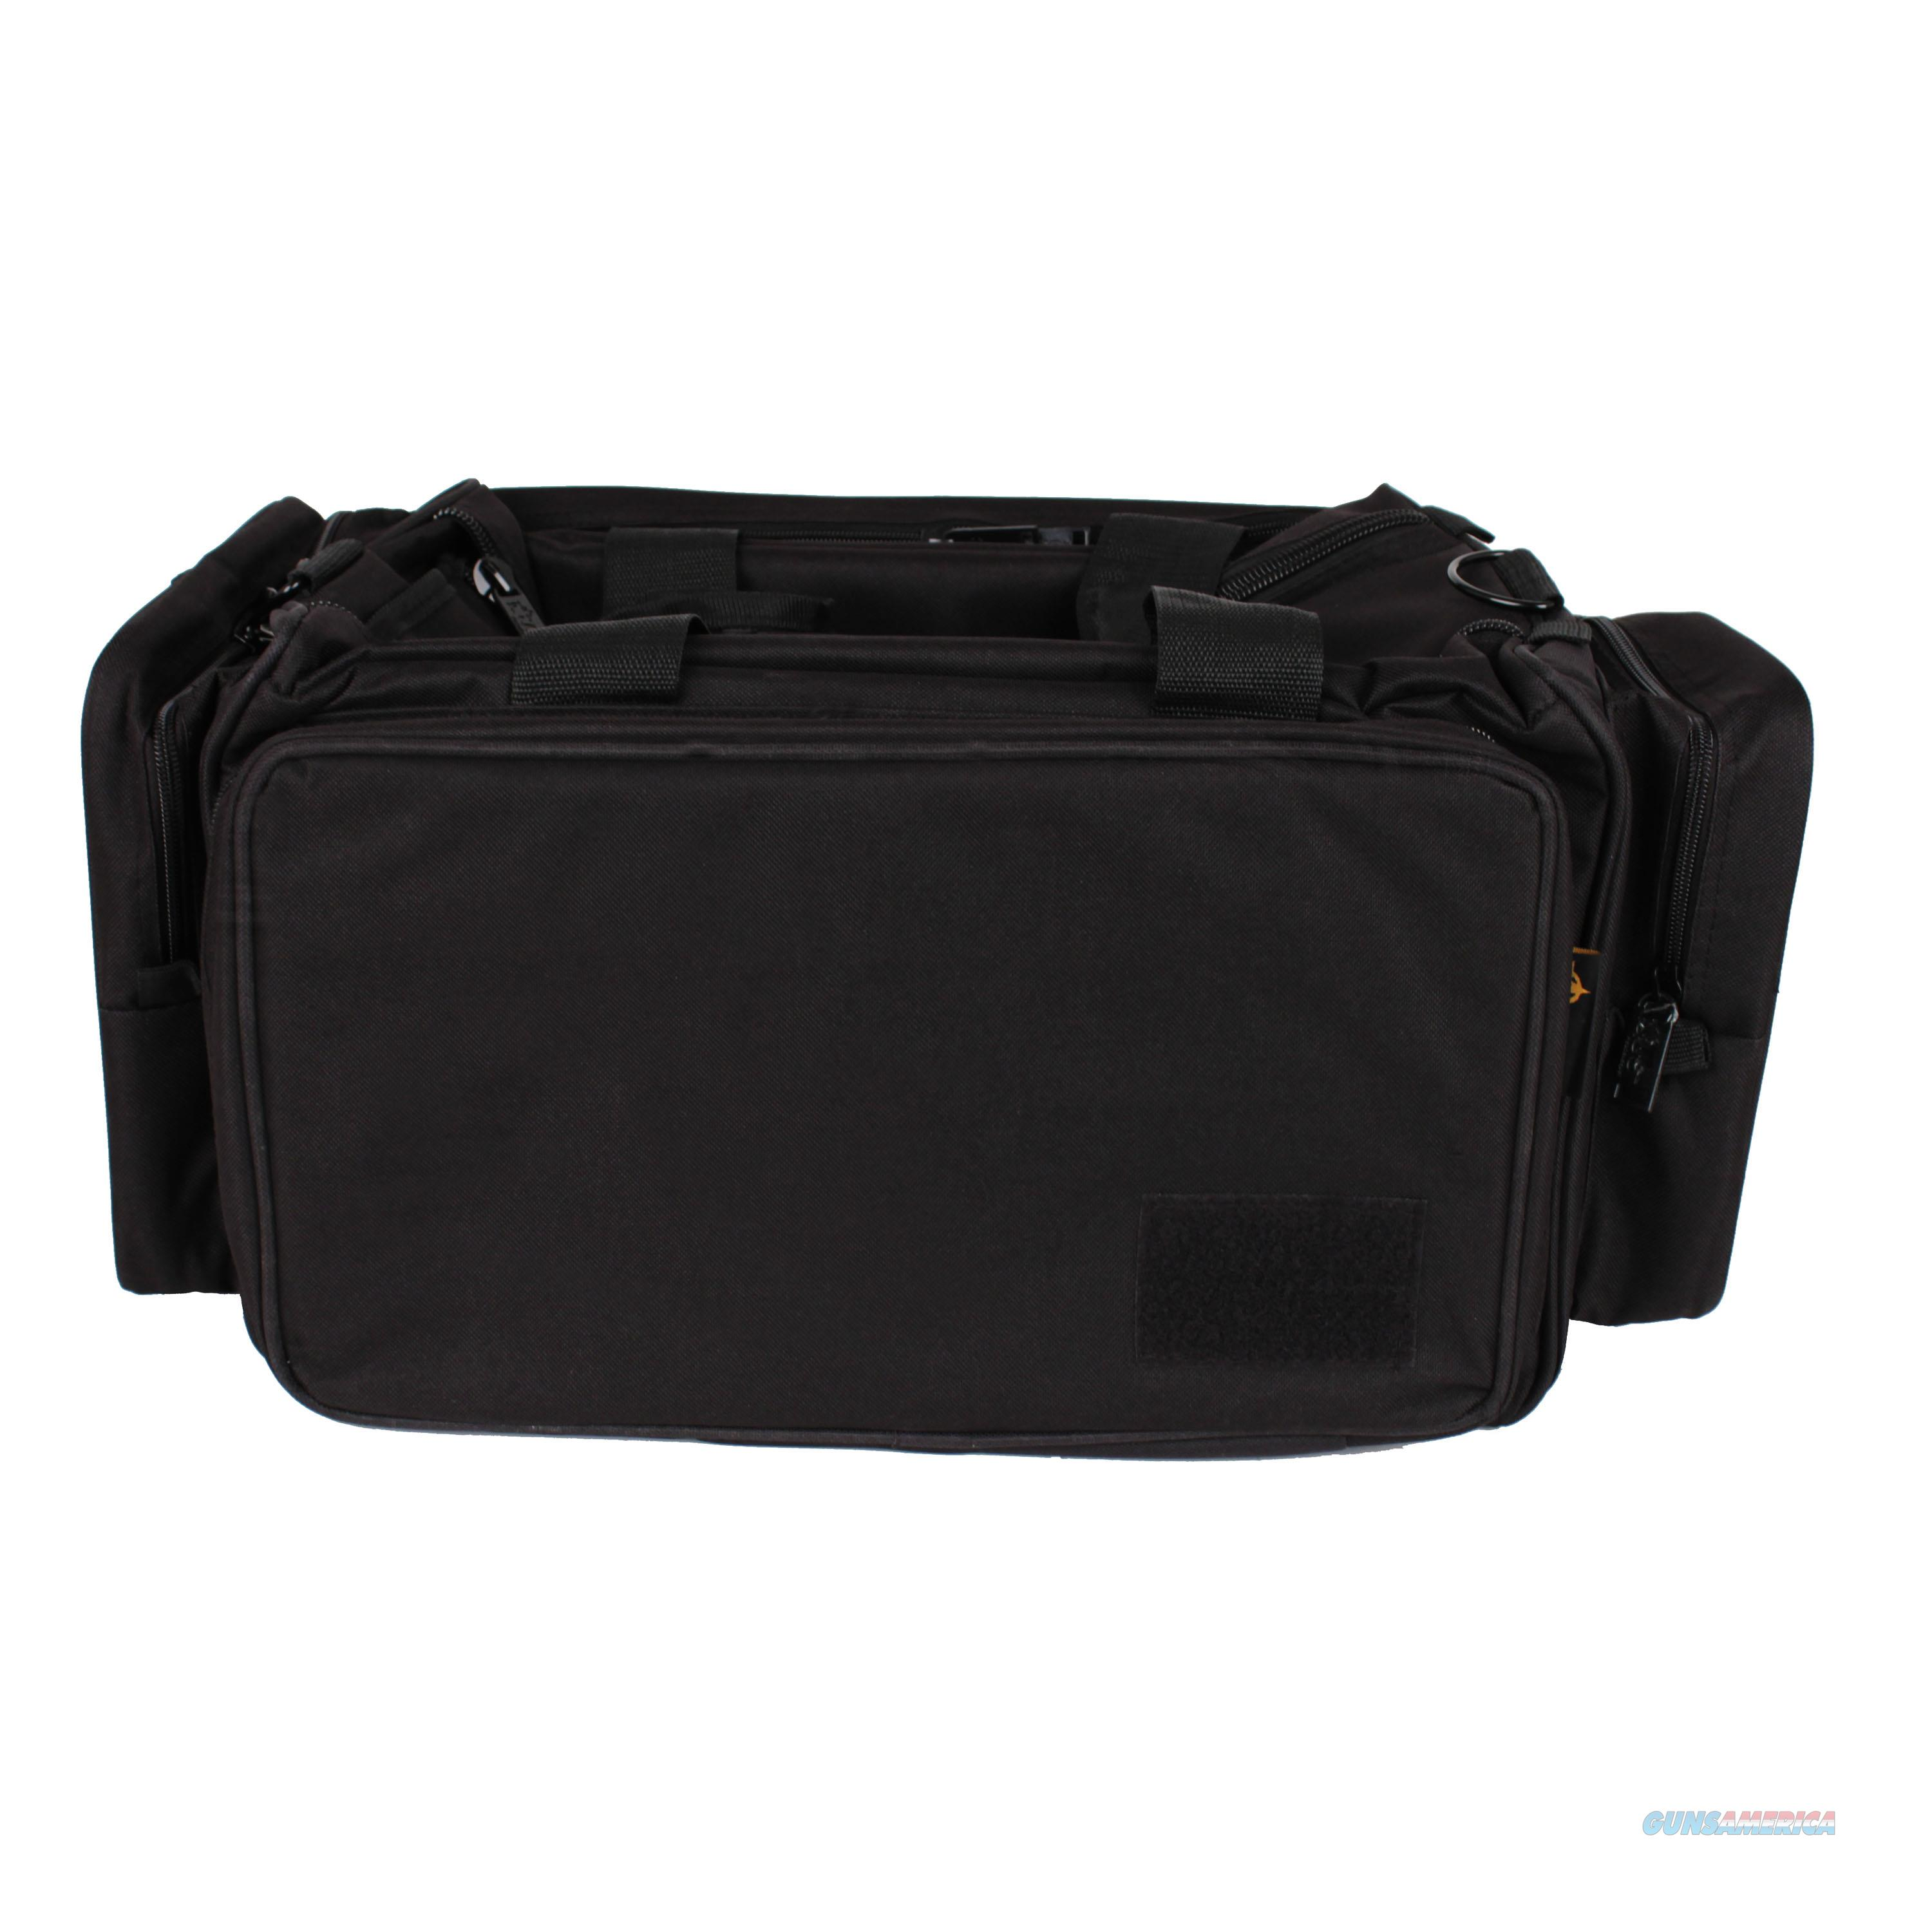 "Us Peacekeepers Competitor Range Bag 24"" X 12"" X 11.5"" Black N55111  Non-Guns > Gun Cases"